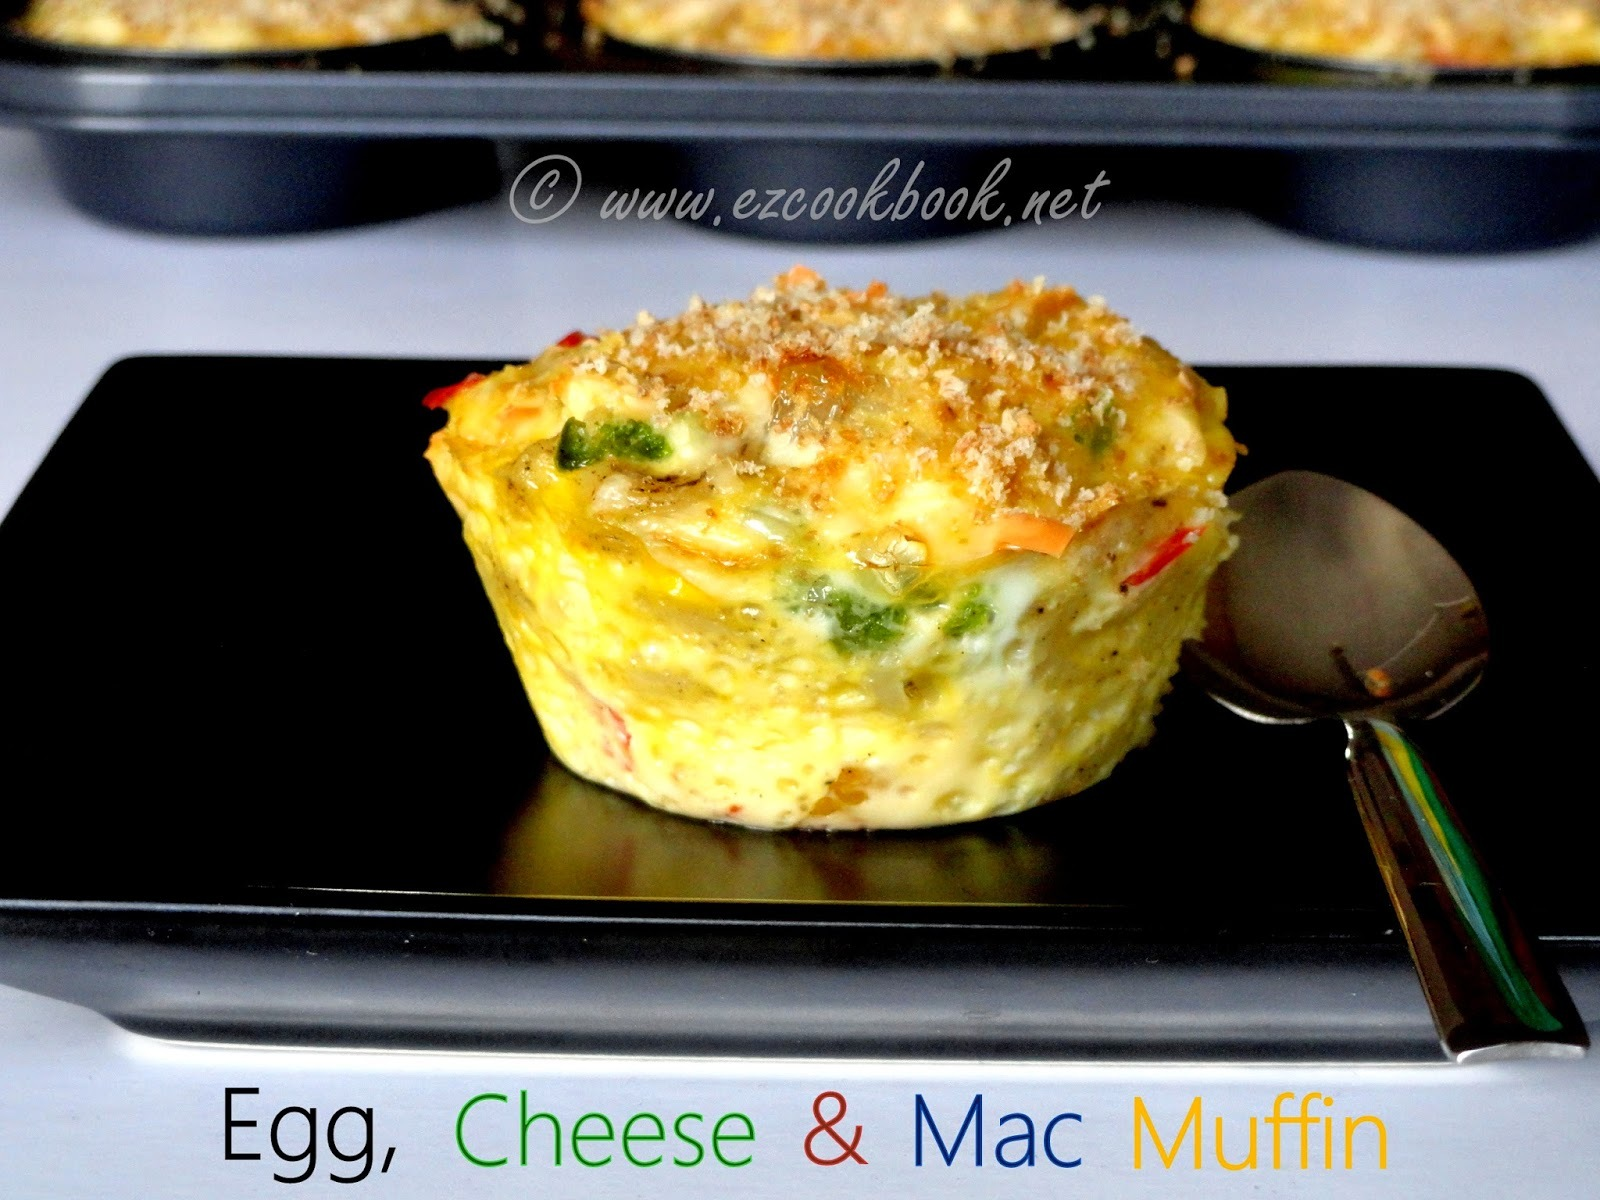 Egg, Cheese & Mac Muffins - Easy Breakfast Muffin Recipe